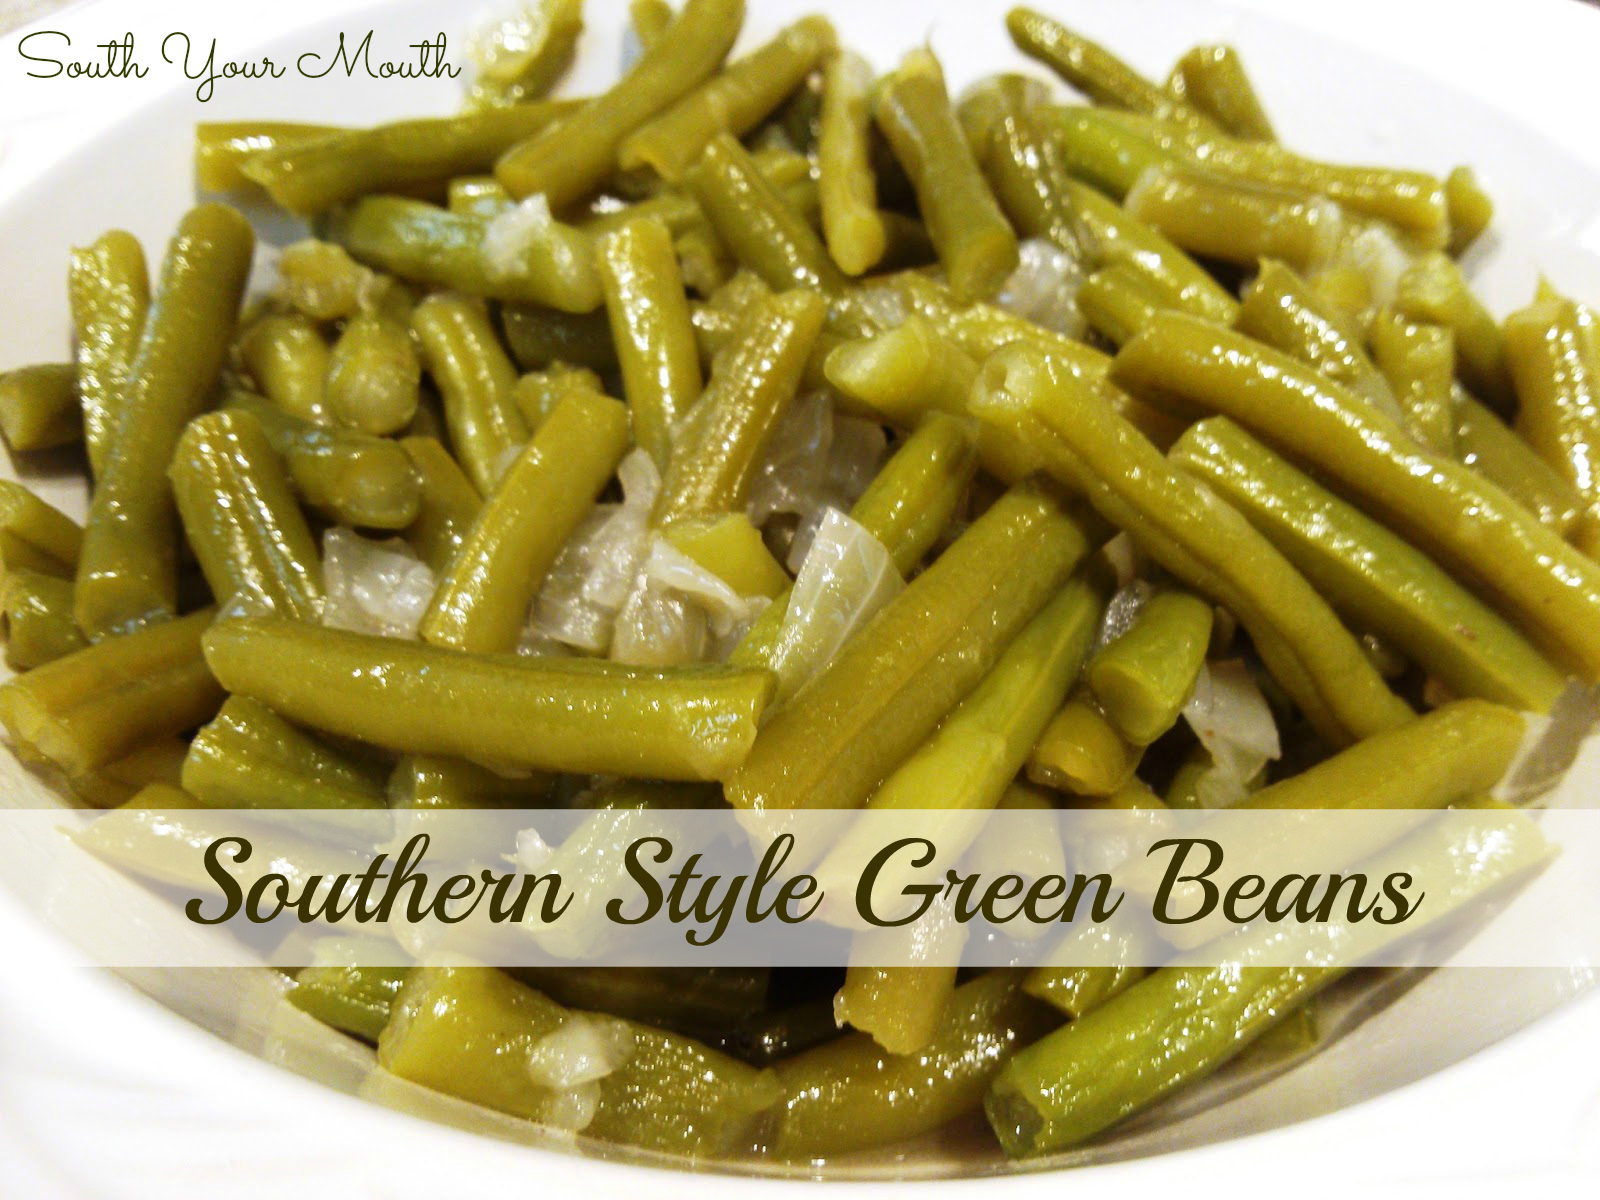 South Your MouthSouthern Style Green Beans